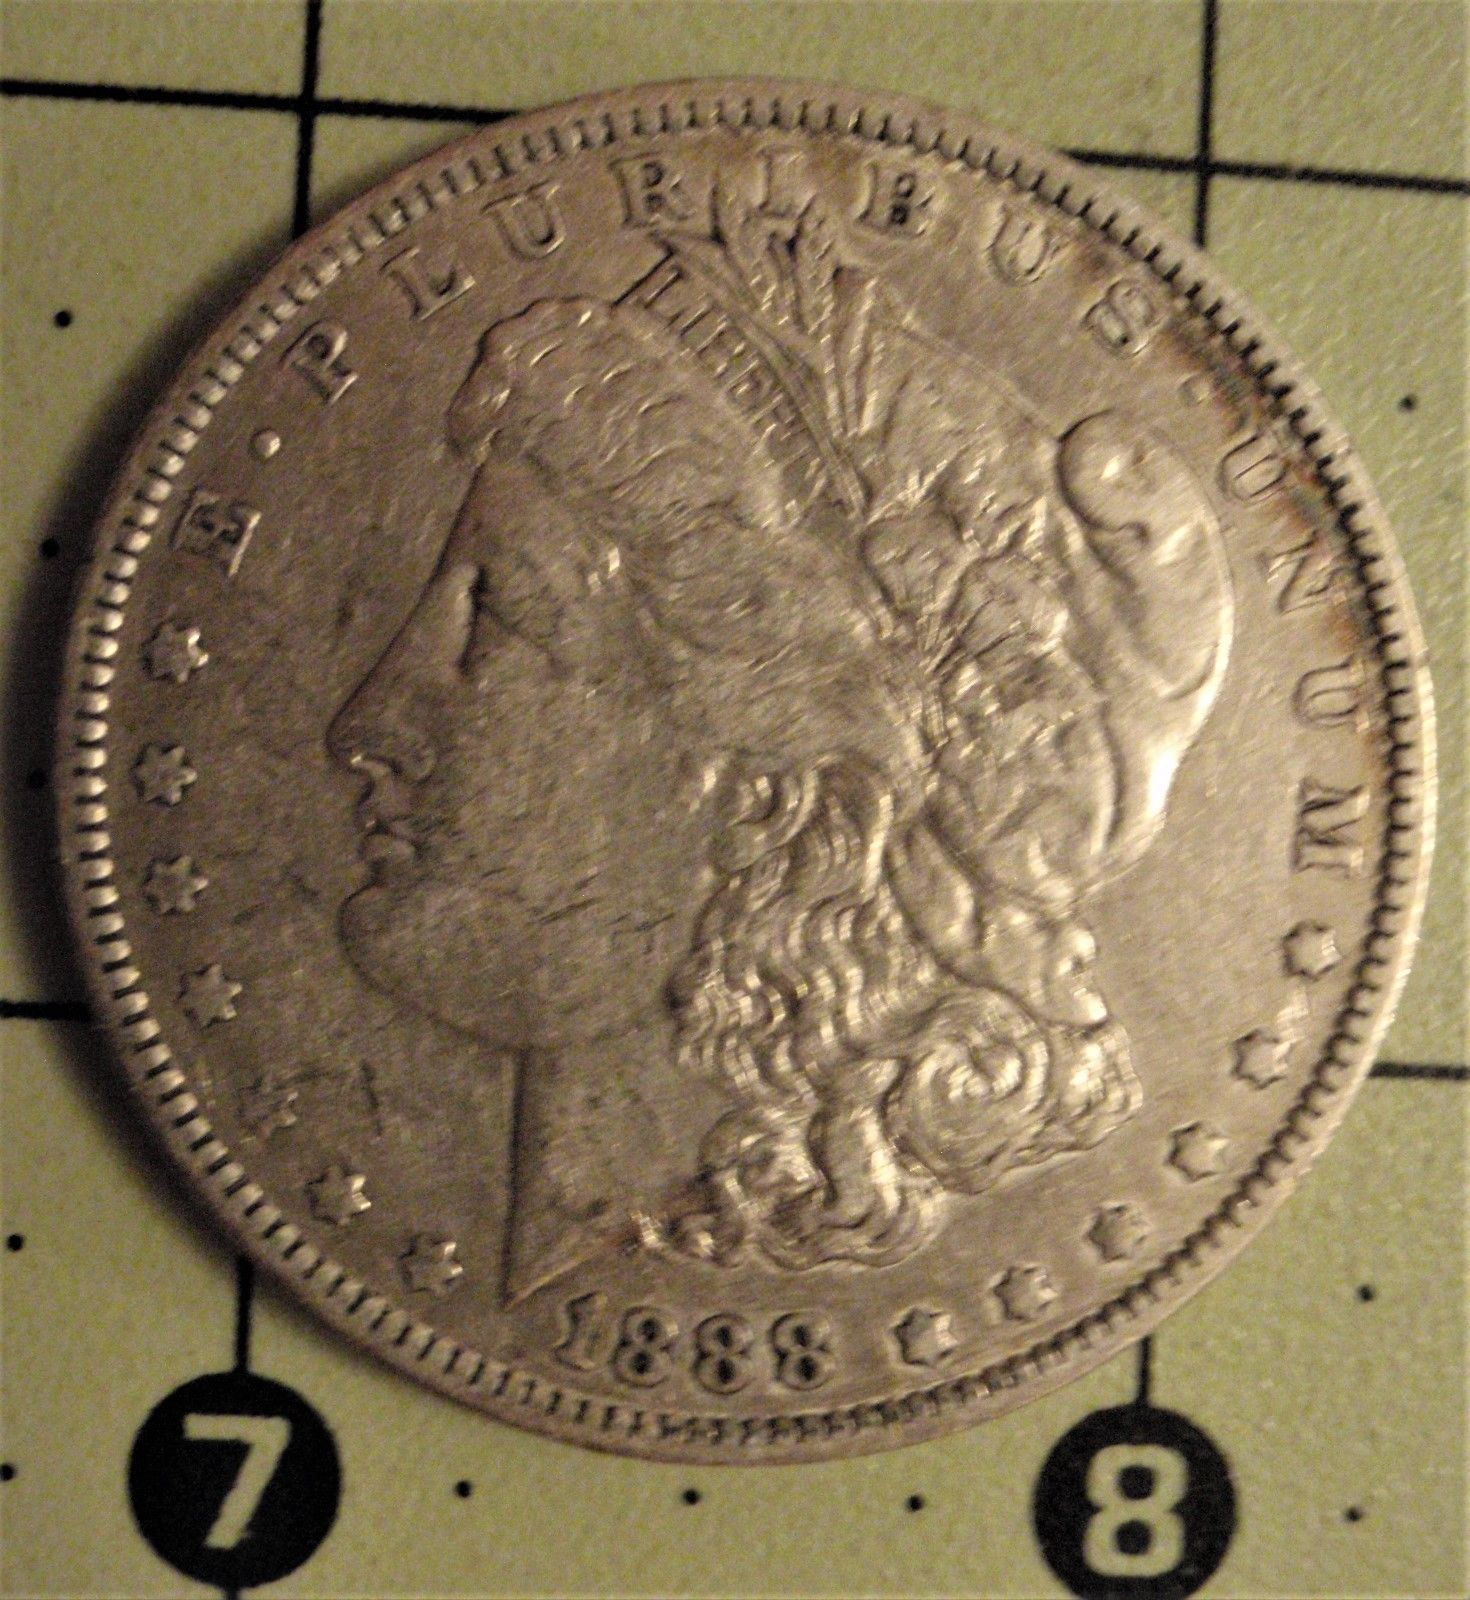 1888 o MORGAN SILVER DOLLAR THIS IS A NICELY DETAILED COIN https://t.co/N4DBmd0dSP https://t.co/to3Ijl6dmq